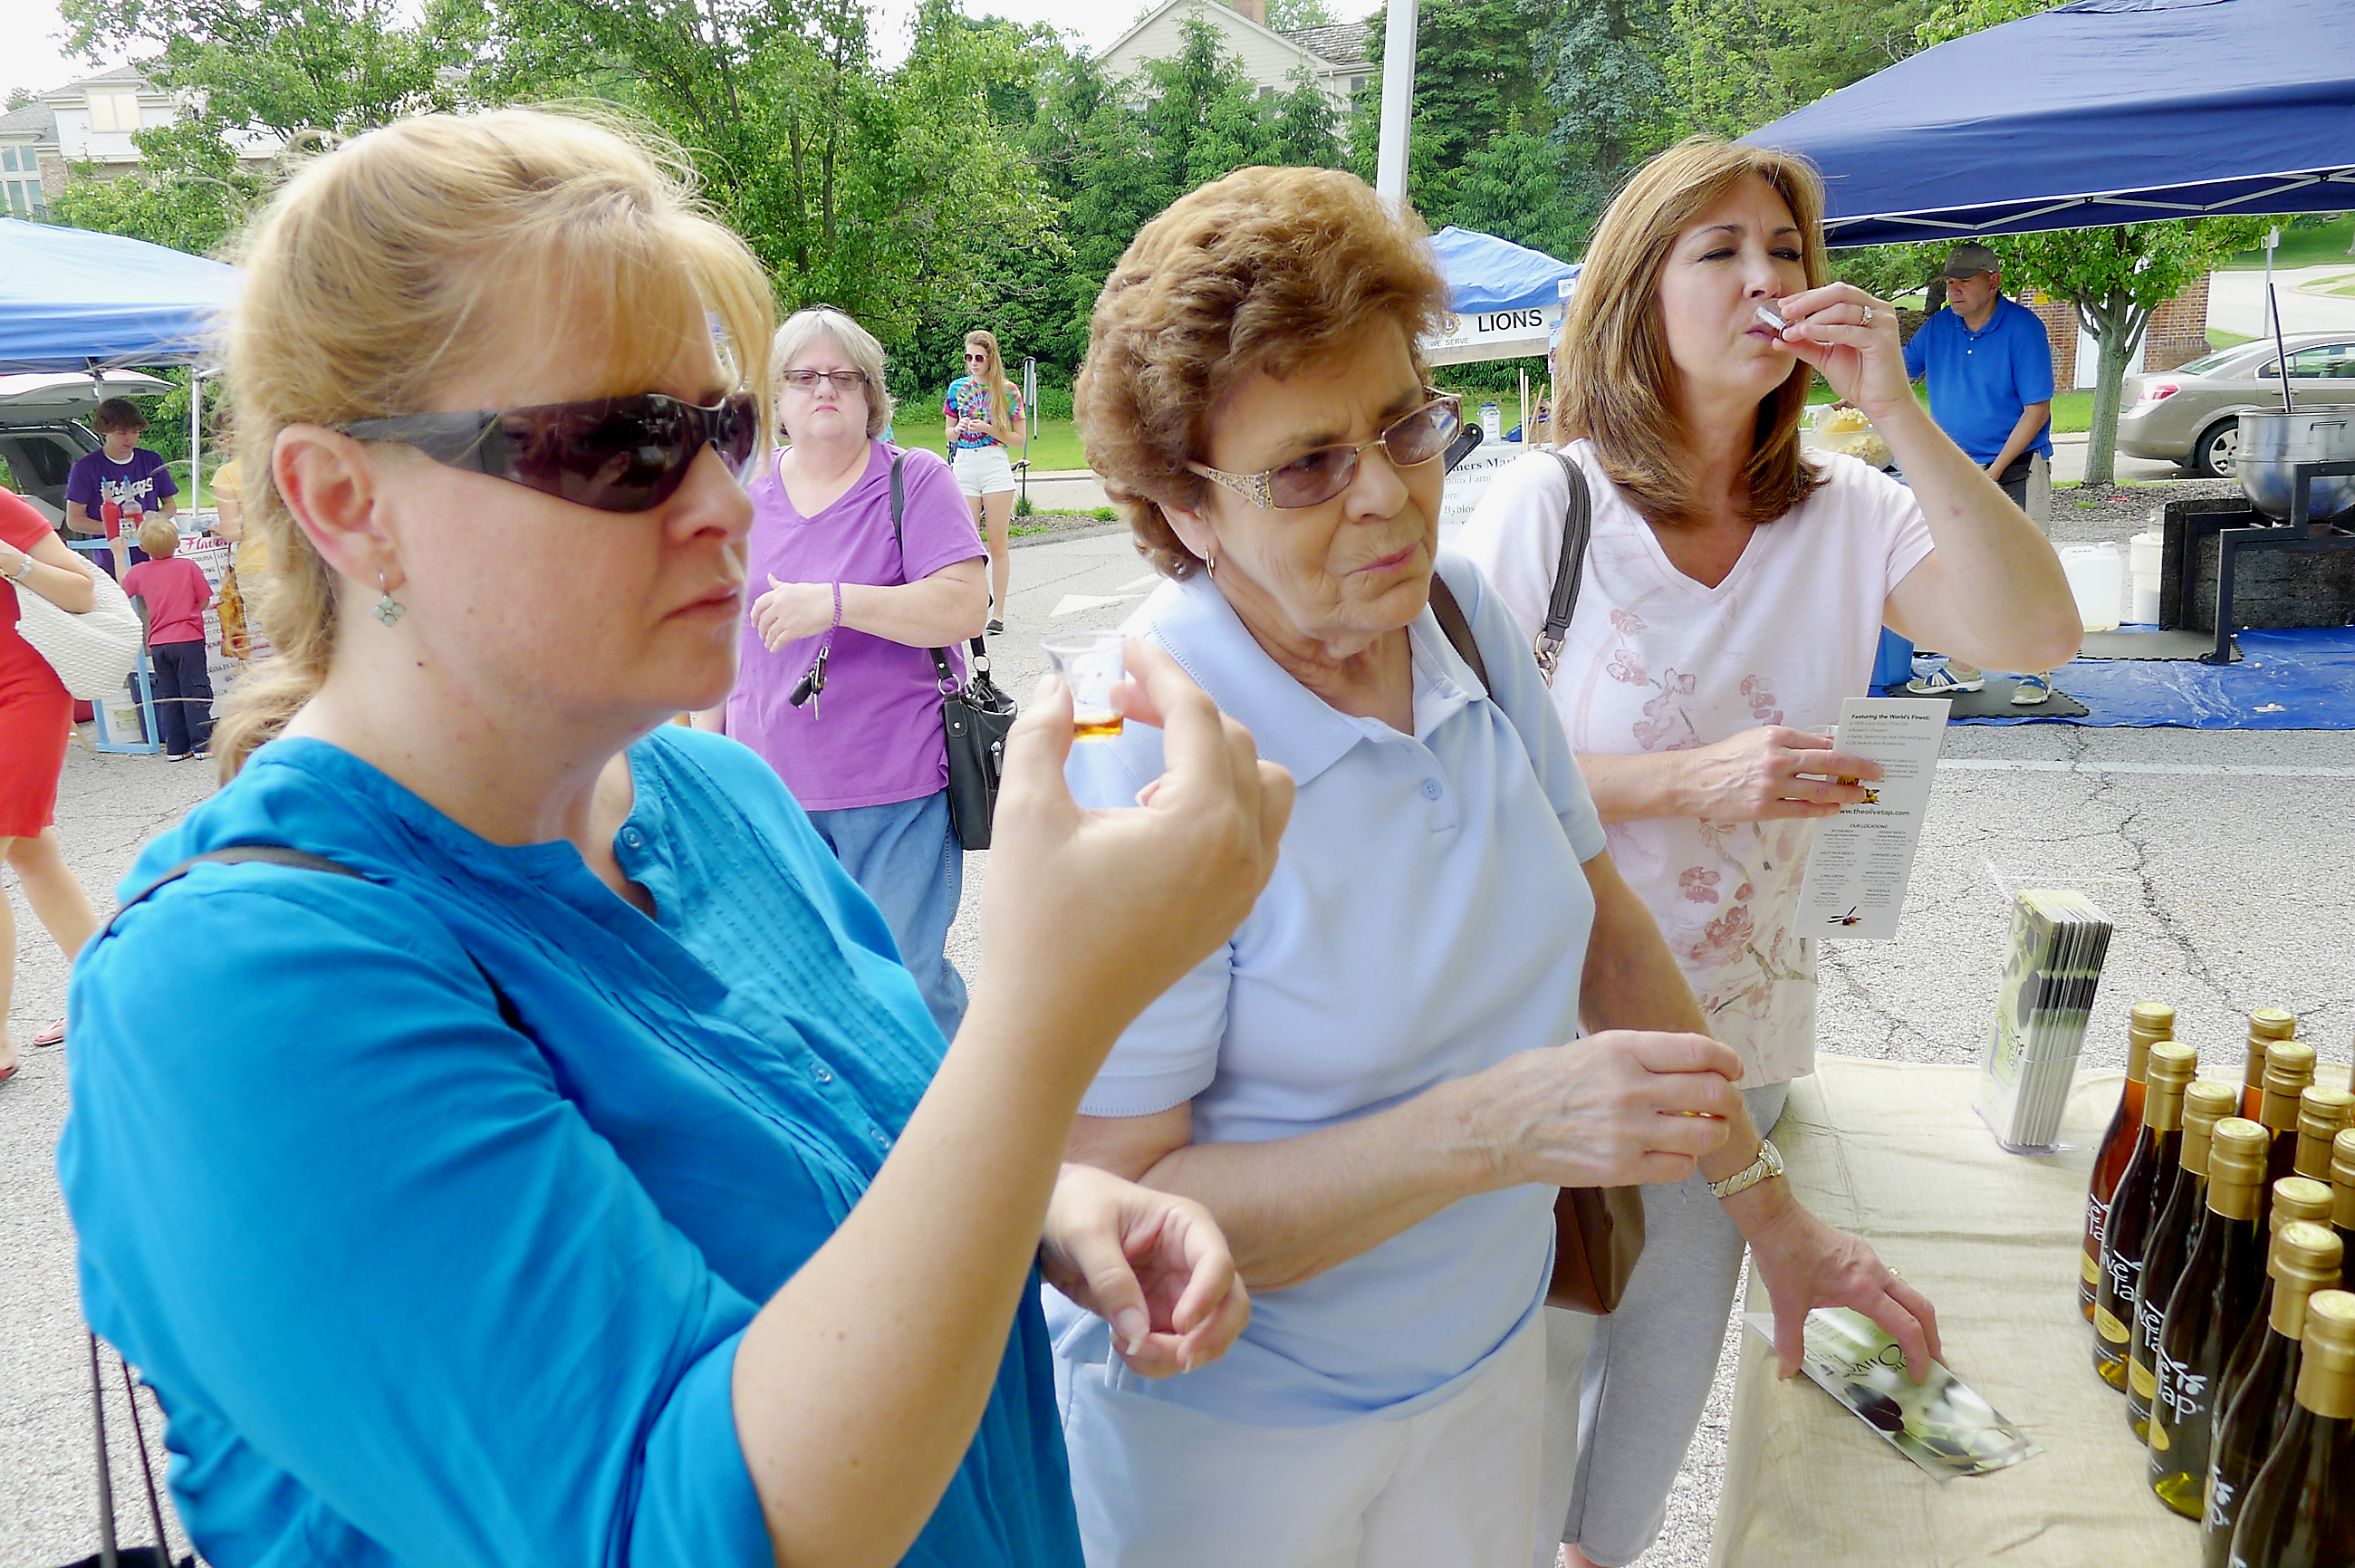 P1230847-15 Geralyn Seng, Harriet Seng and Tracy Wilson had an olive-oil tasting at the Olive Tap booth at the opening day at the Upper St. Clair Farmers Market.